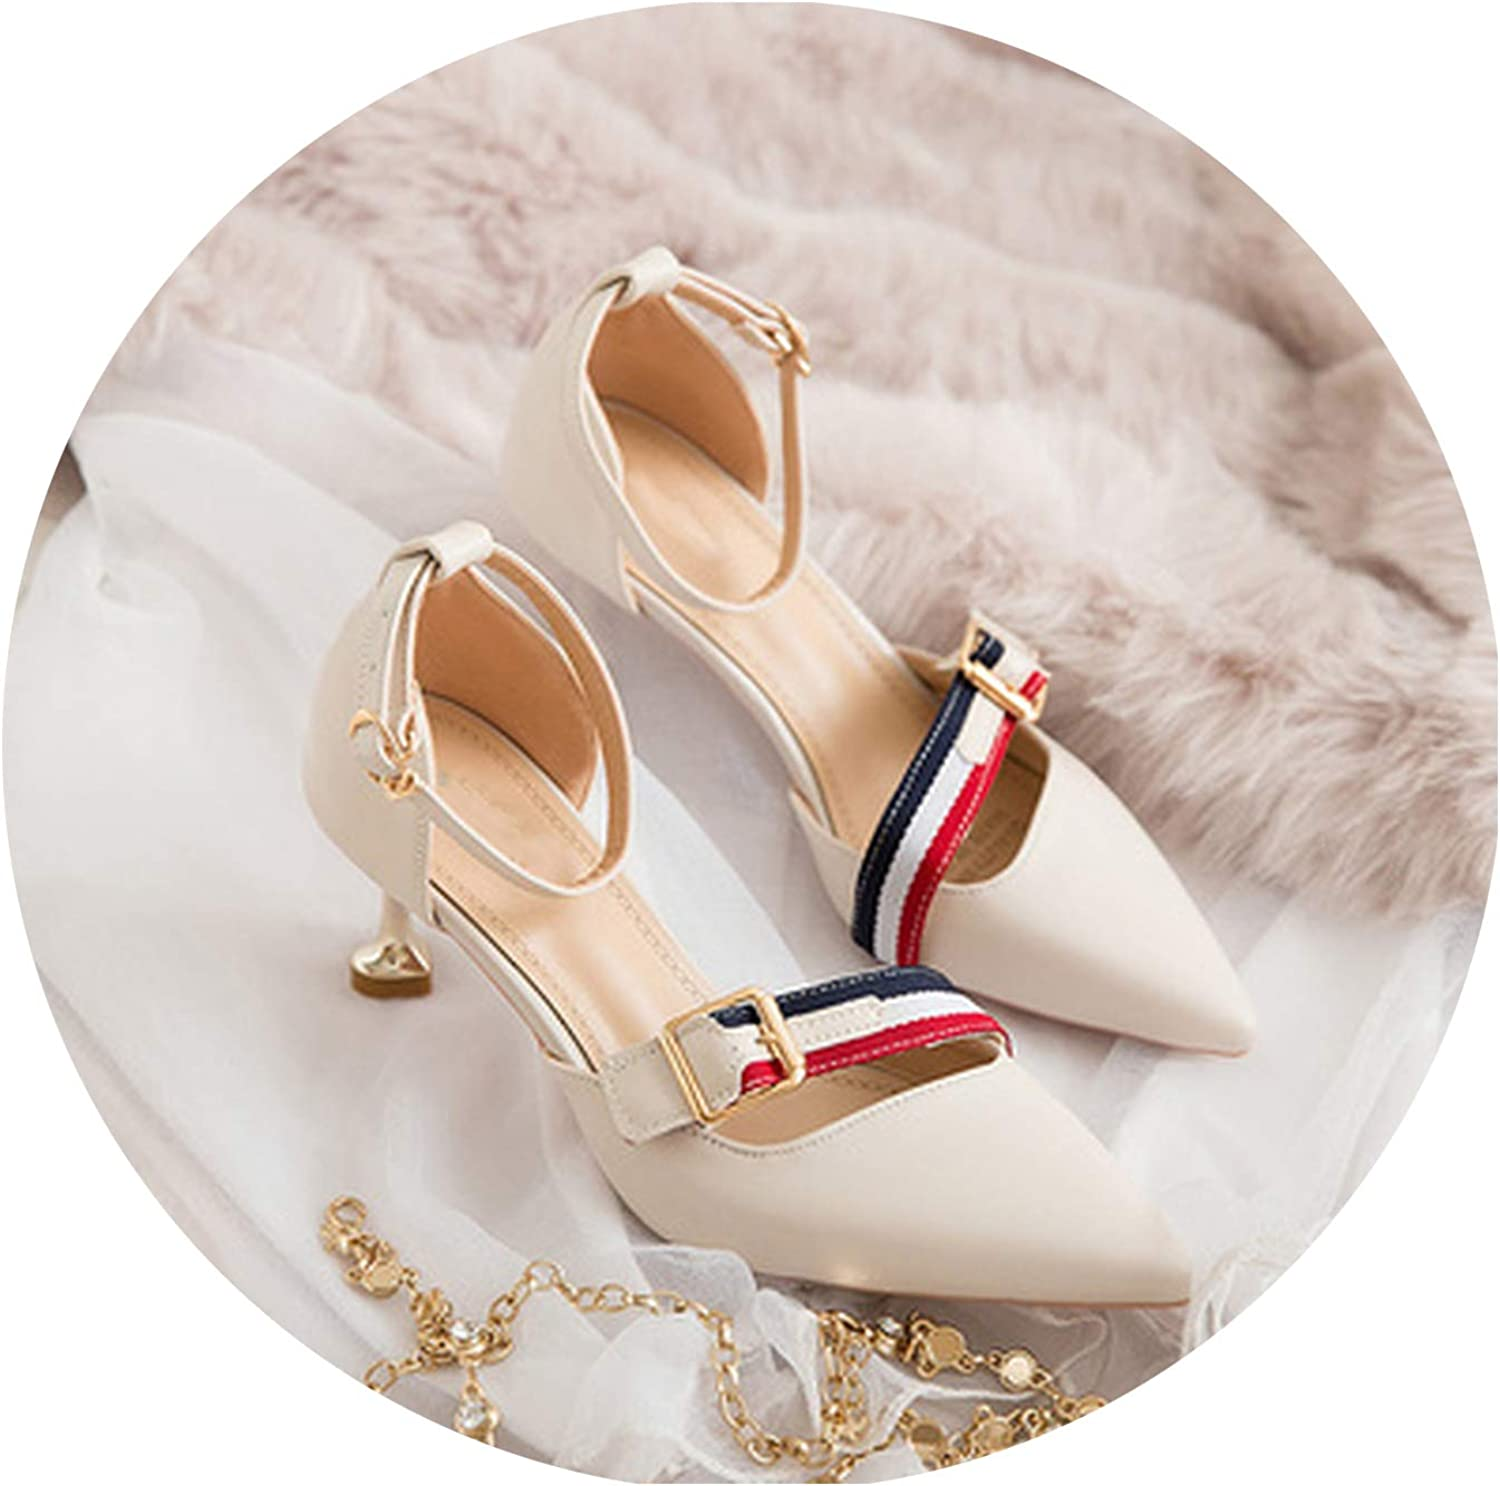 Smile-xj Women Sandals Pointed Stiletto high Heels Simple Shallow Mouth Womens shoes Temperament Single shoes